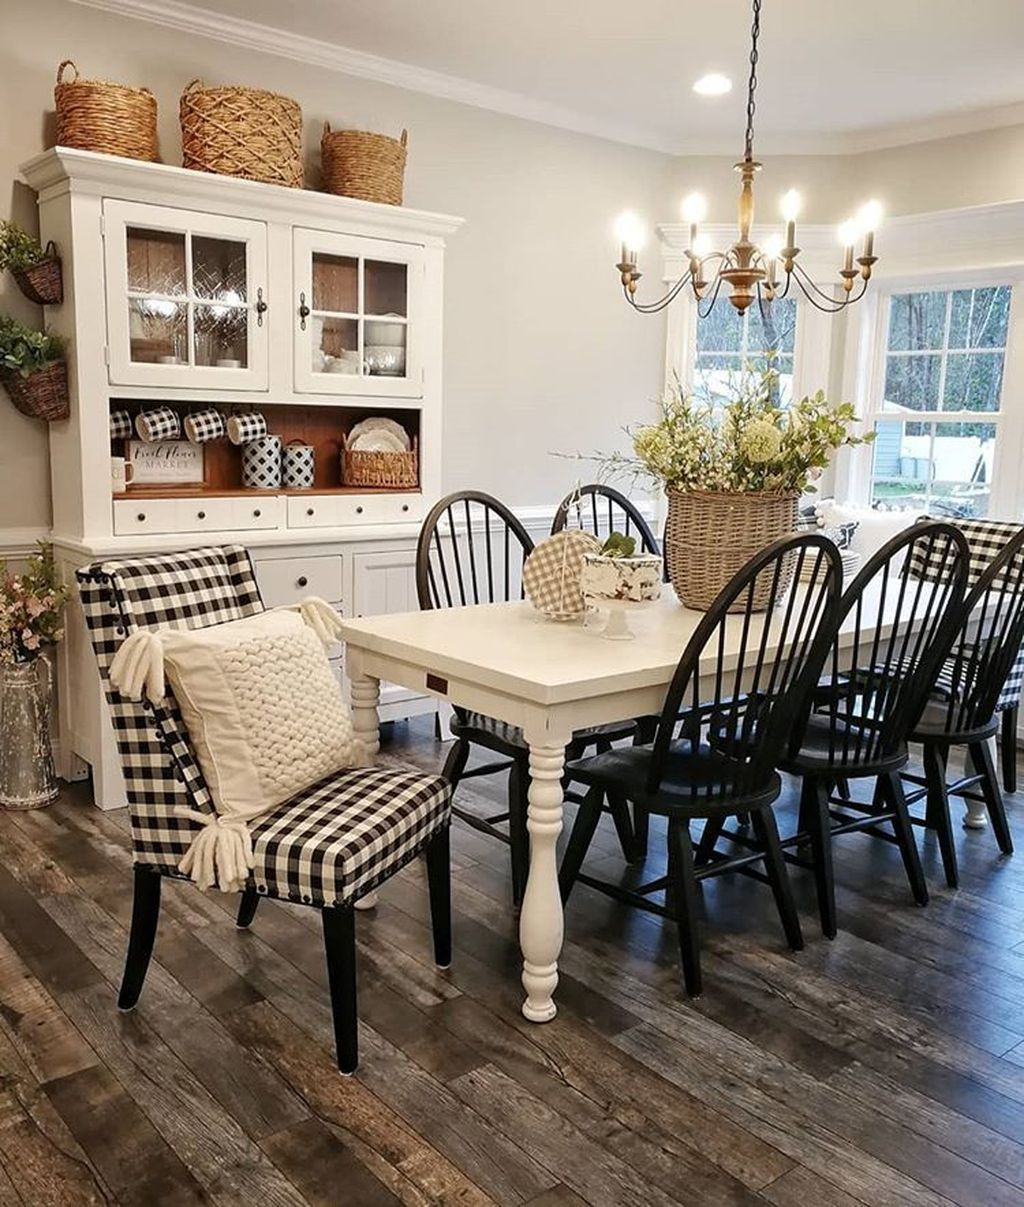 30+ Modern Farmhouse Dining Room Decoration Ideas images